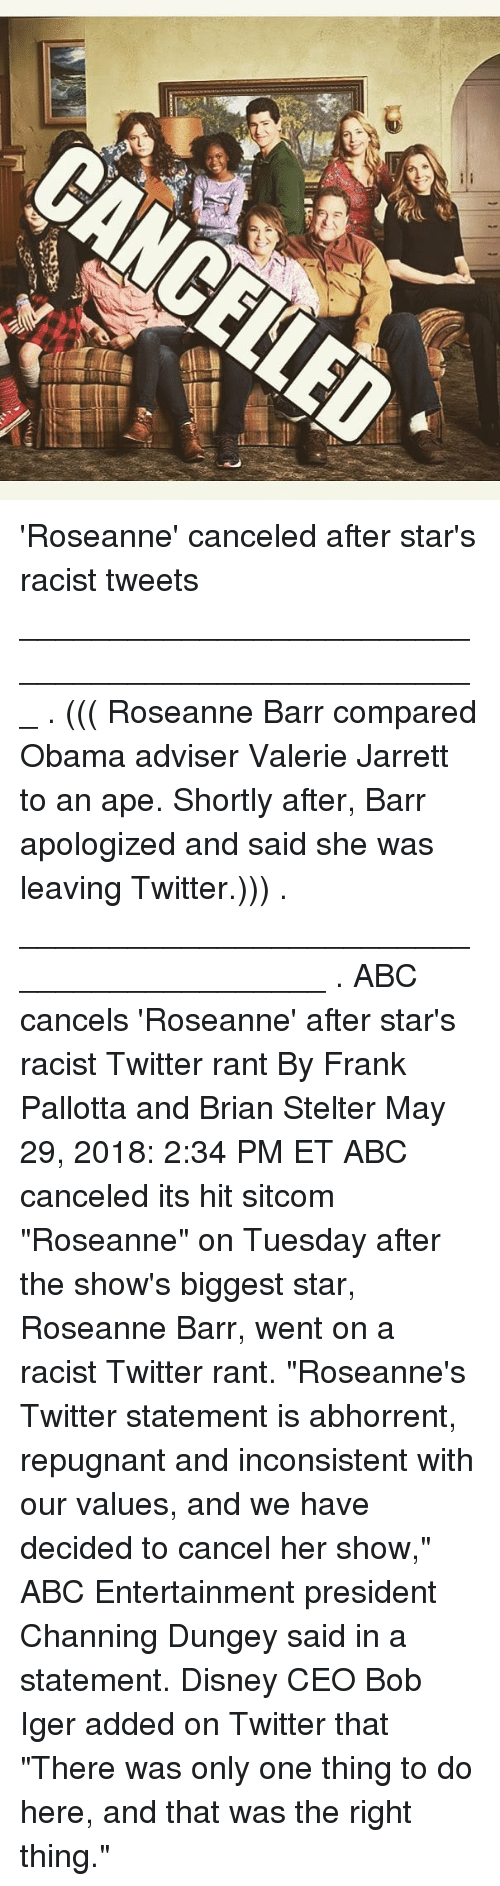 "inconsistent: 'Roseanne' canceled after star's racist tweets ___________________________________________________ . ((( Roseanne Barr compared Obama adviser Valerie Jarrett to an ape. Shortly after, Barr apologized and said she was leaving Twitter.))) . __________________________________________ . ABC cancels 'Roseanne' after star's racist Twitter rant By Frank Pallotta and Brian Stelter May 29, 2018: 2:34 PM ET ABC canceled its hit sitcom ""Roseanne"" on Tuesday after the show's biggest star, Roseanne Barr, went on a racist Twitter rant. ""Roseanne's Twitter statement is abhorrent, repugnant and inconsistent with our values, and we have decided to cancel her show,"" ABC Entertainment president Channing Dungey said in a statement. Disney CEO Bob Iger added on Twitter that ""There was only one thing to do here, and that was the right thing."""